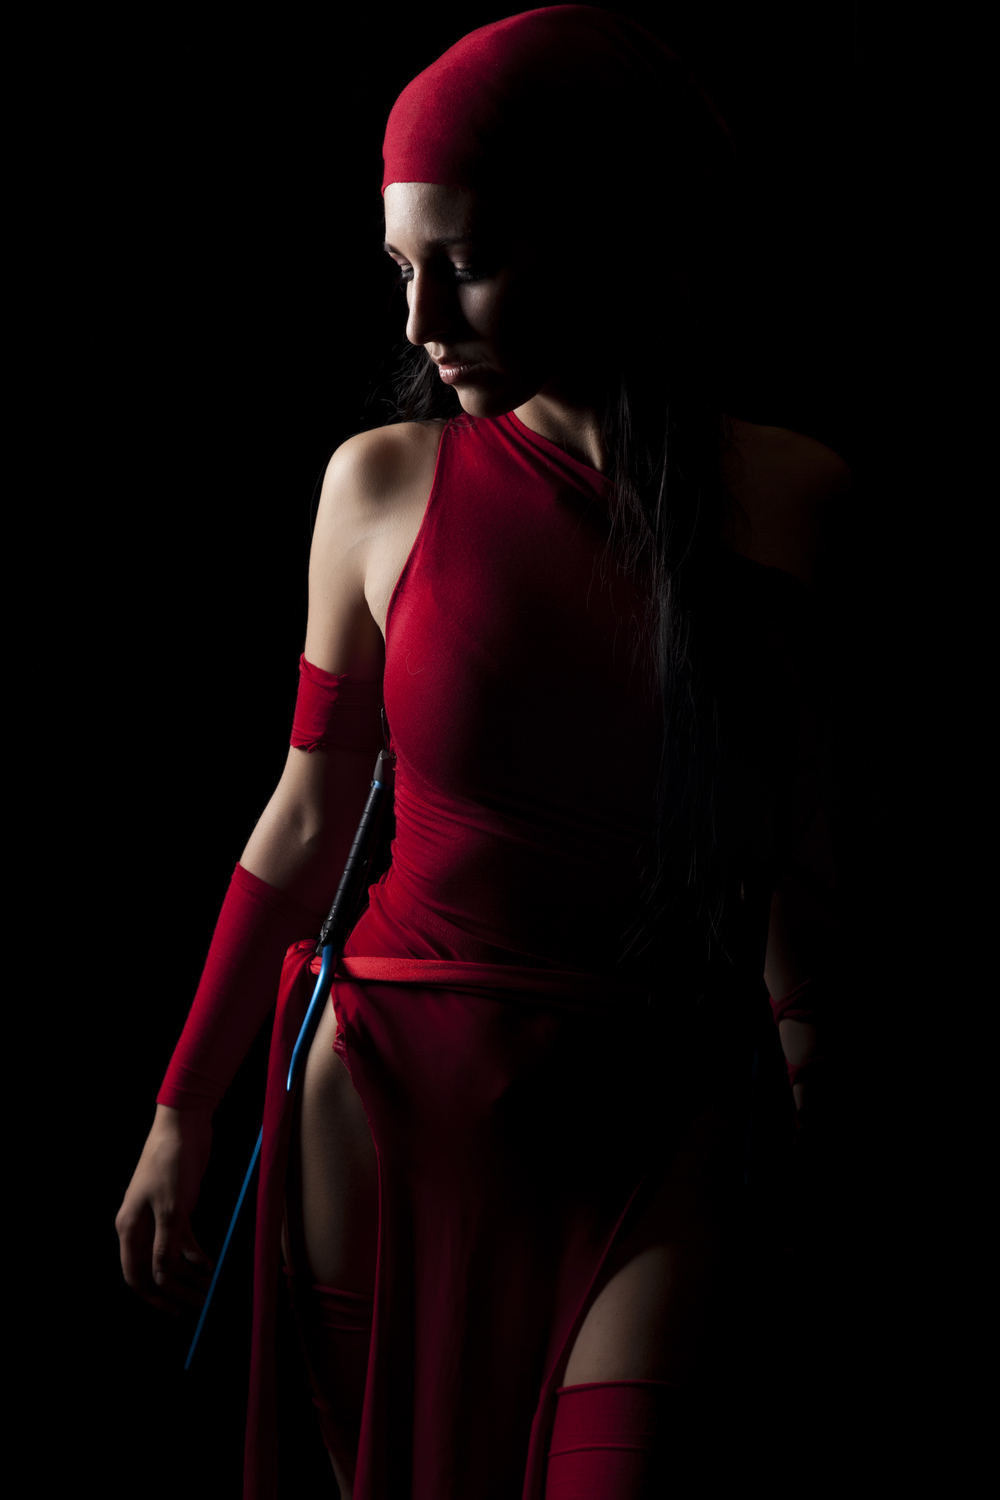 Jeanne Killjoy is Elektra | Photo by: Superhero Photography